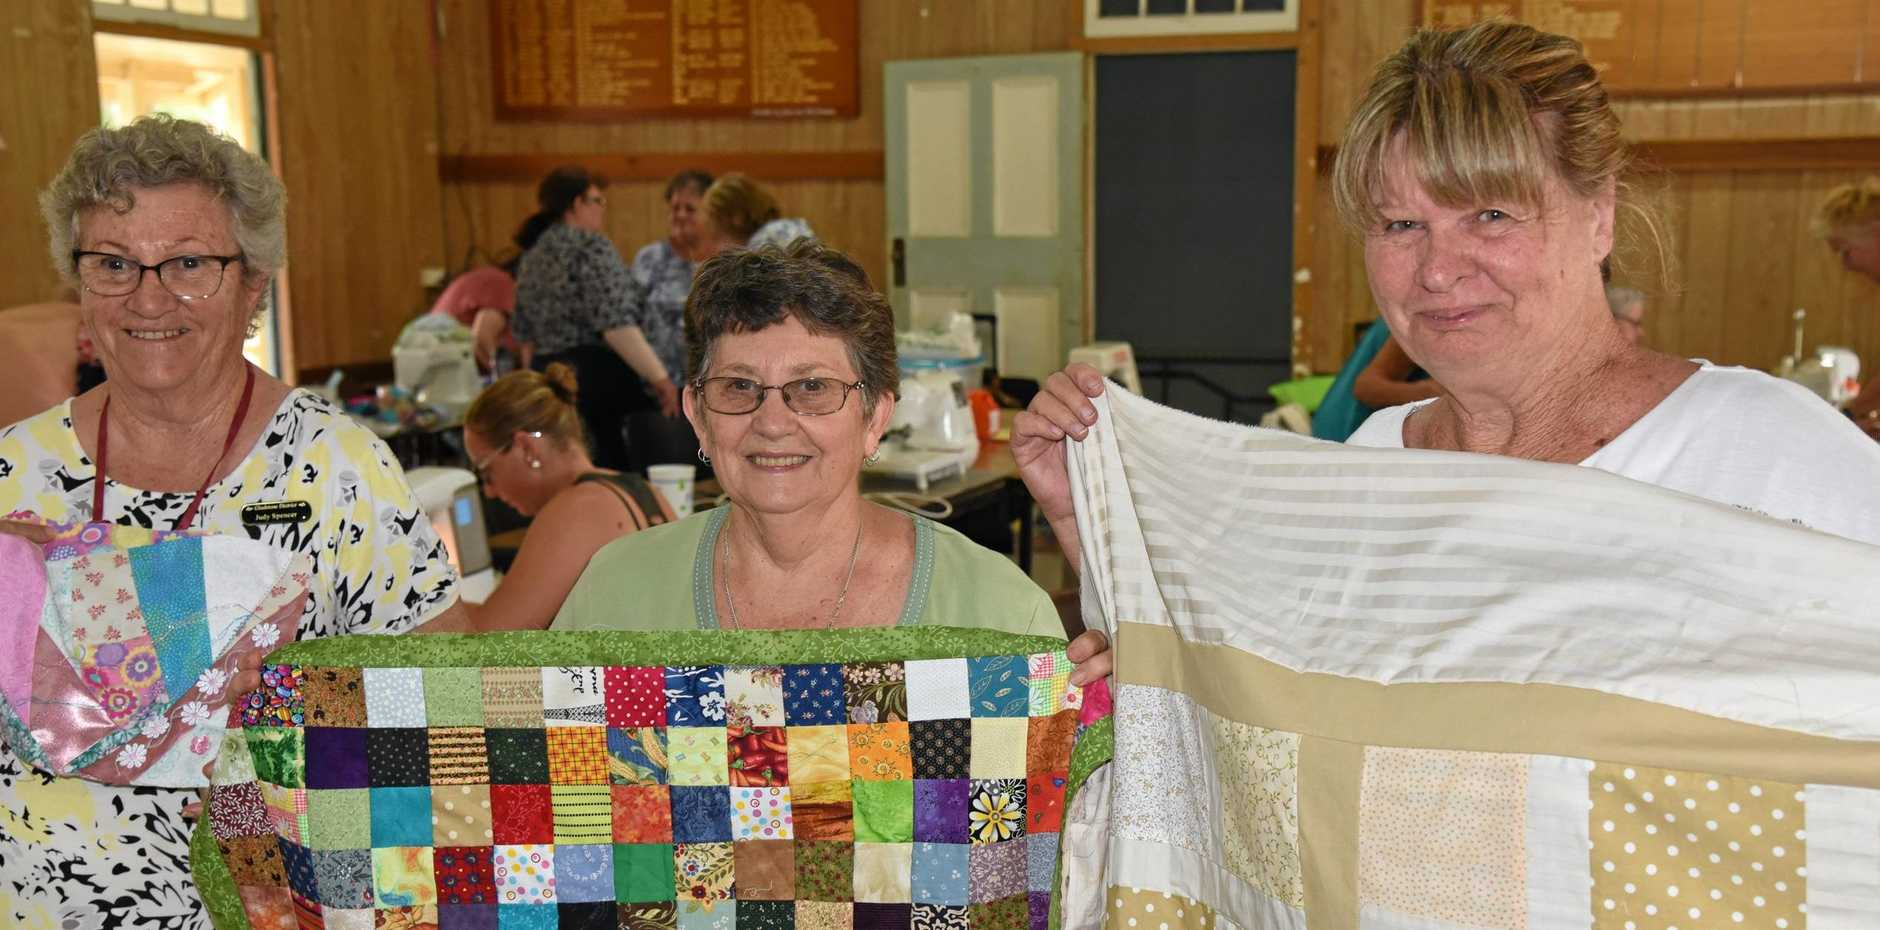 STITCHED UP: Judy Spencer, Ann Vaughan and Pam Whitley at the Material Girls retreat.